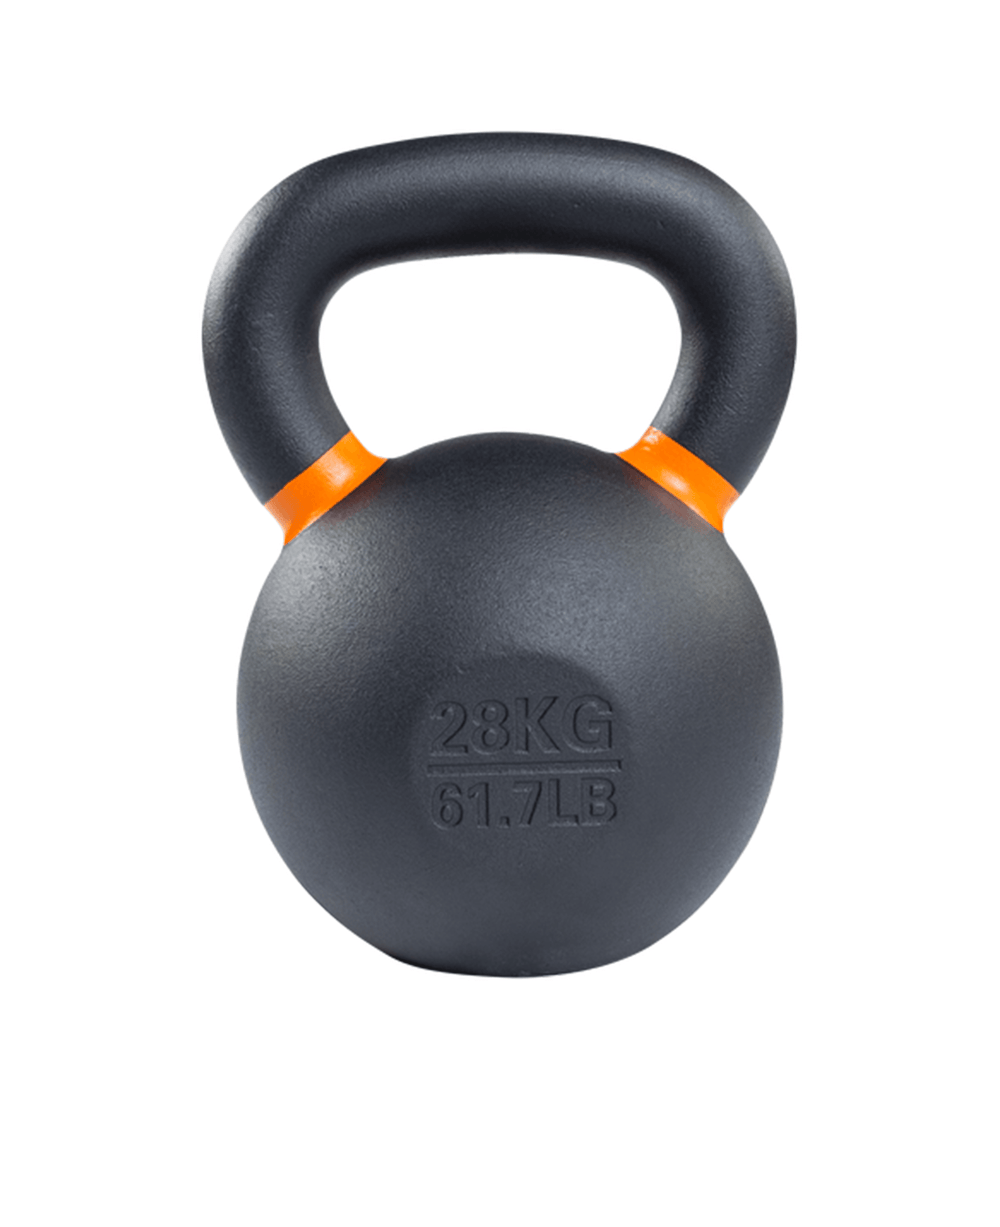 Body-Solid Premium Training Kettlebell 28 kg Alt1